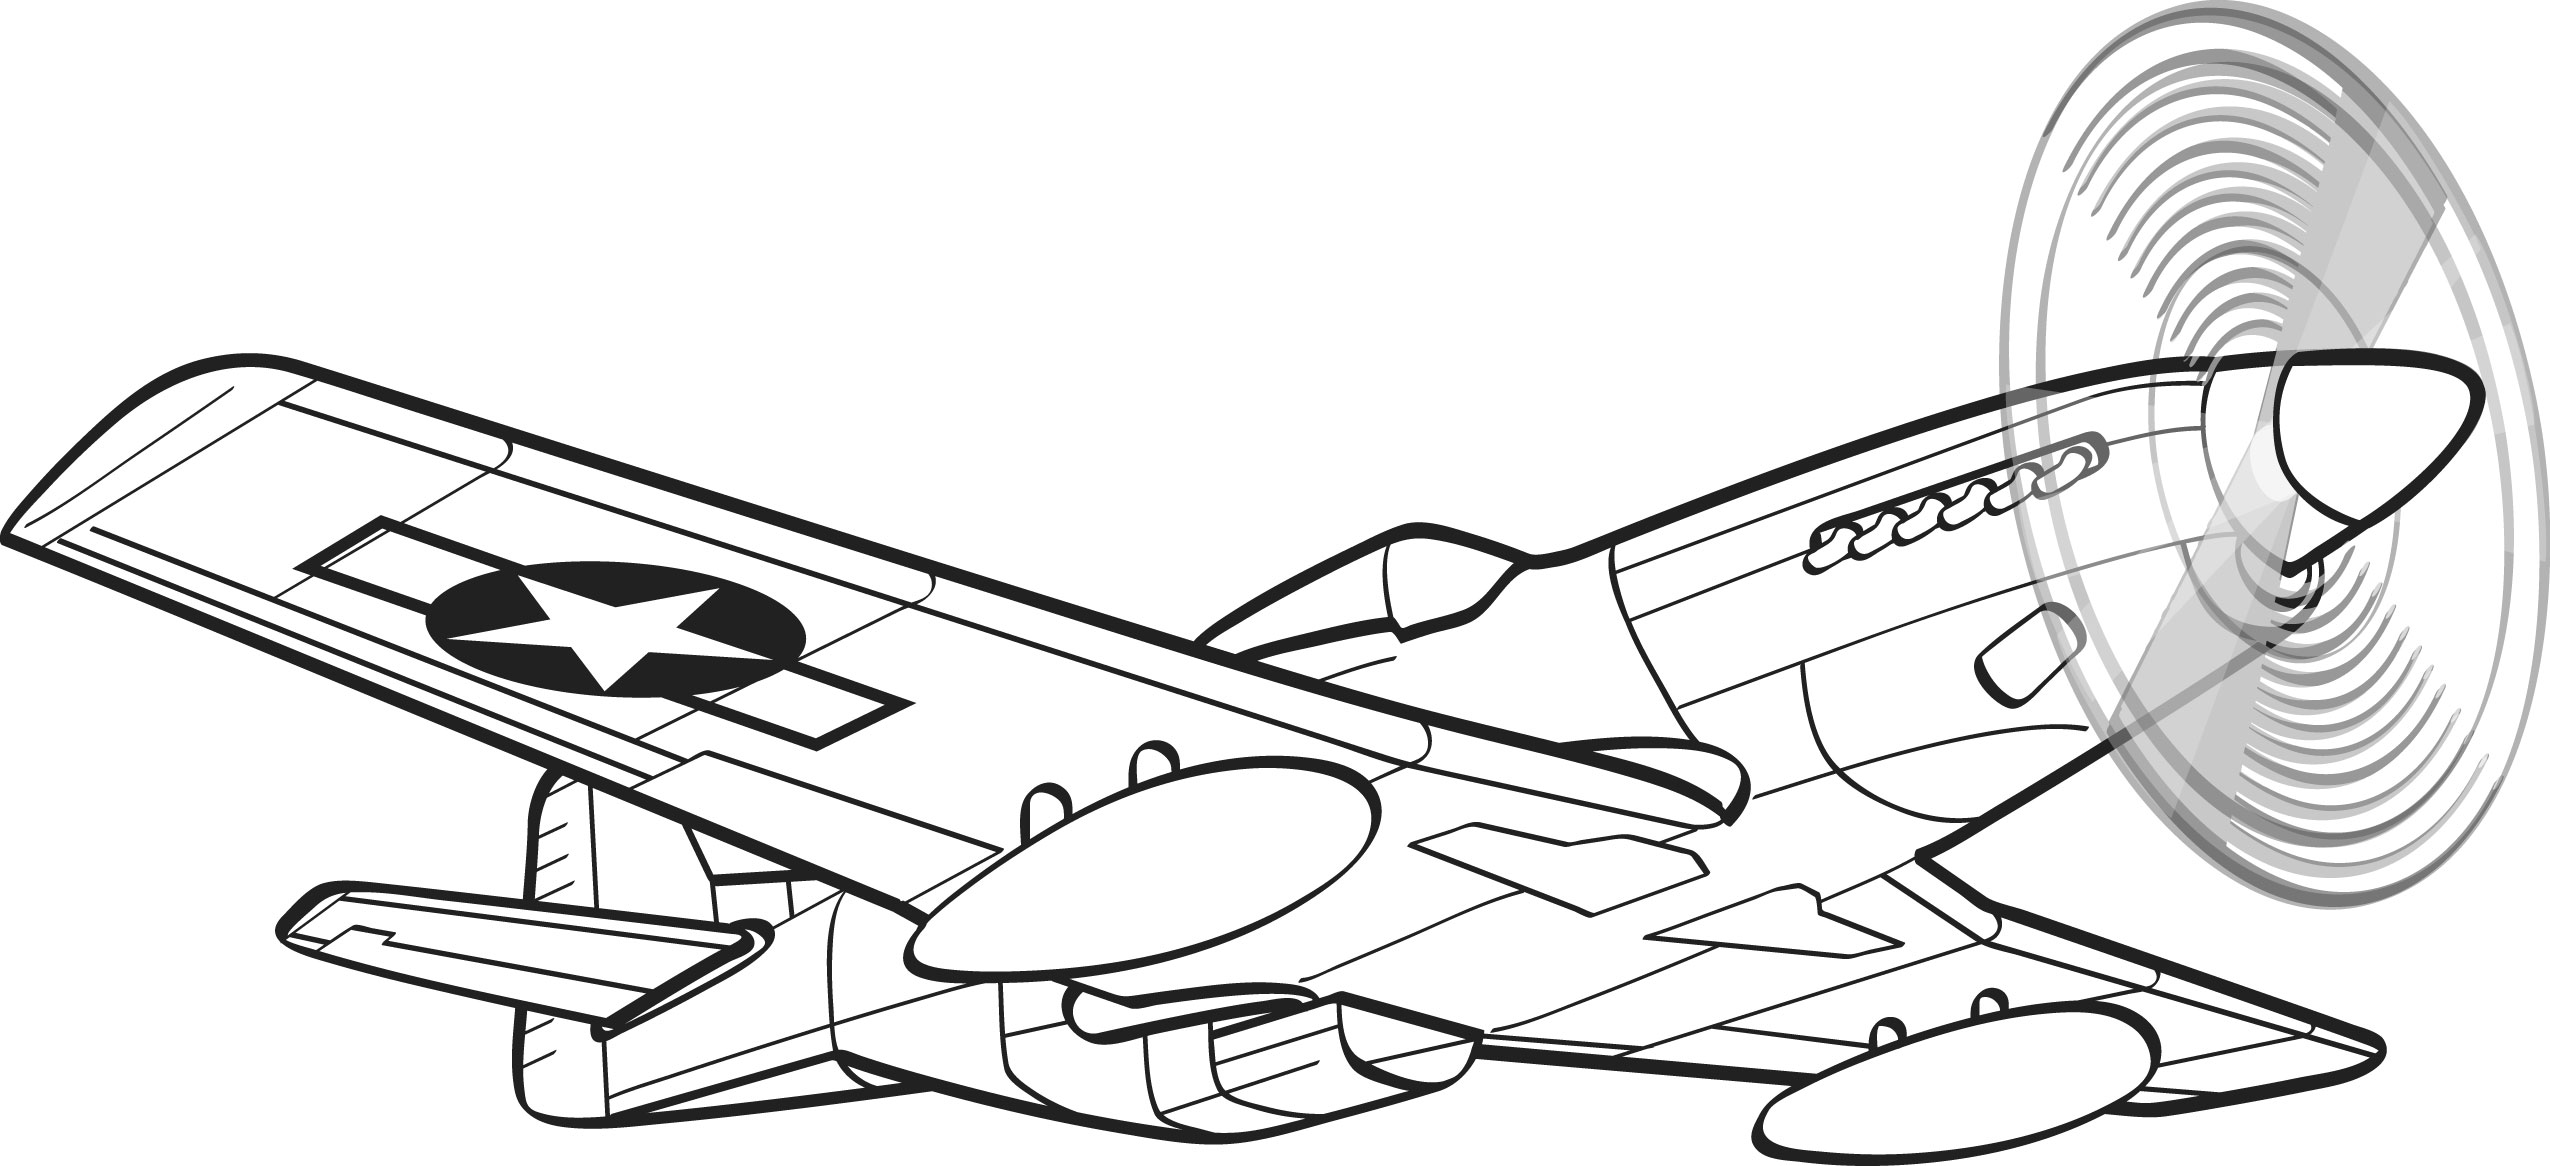 drawing of an airplane aircraft line drawing at getdrawings free download airplane of an drawing